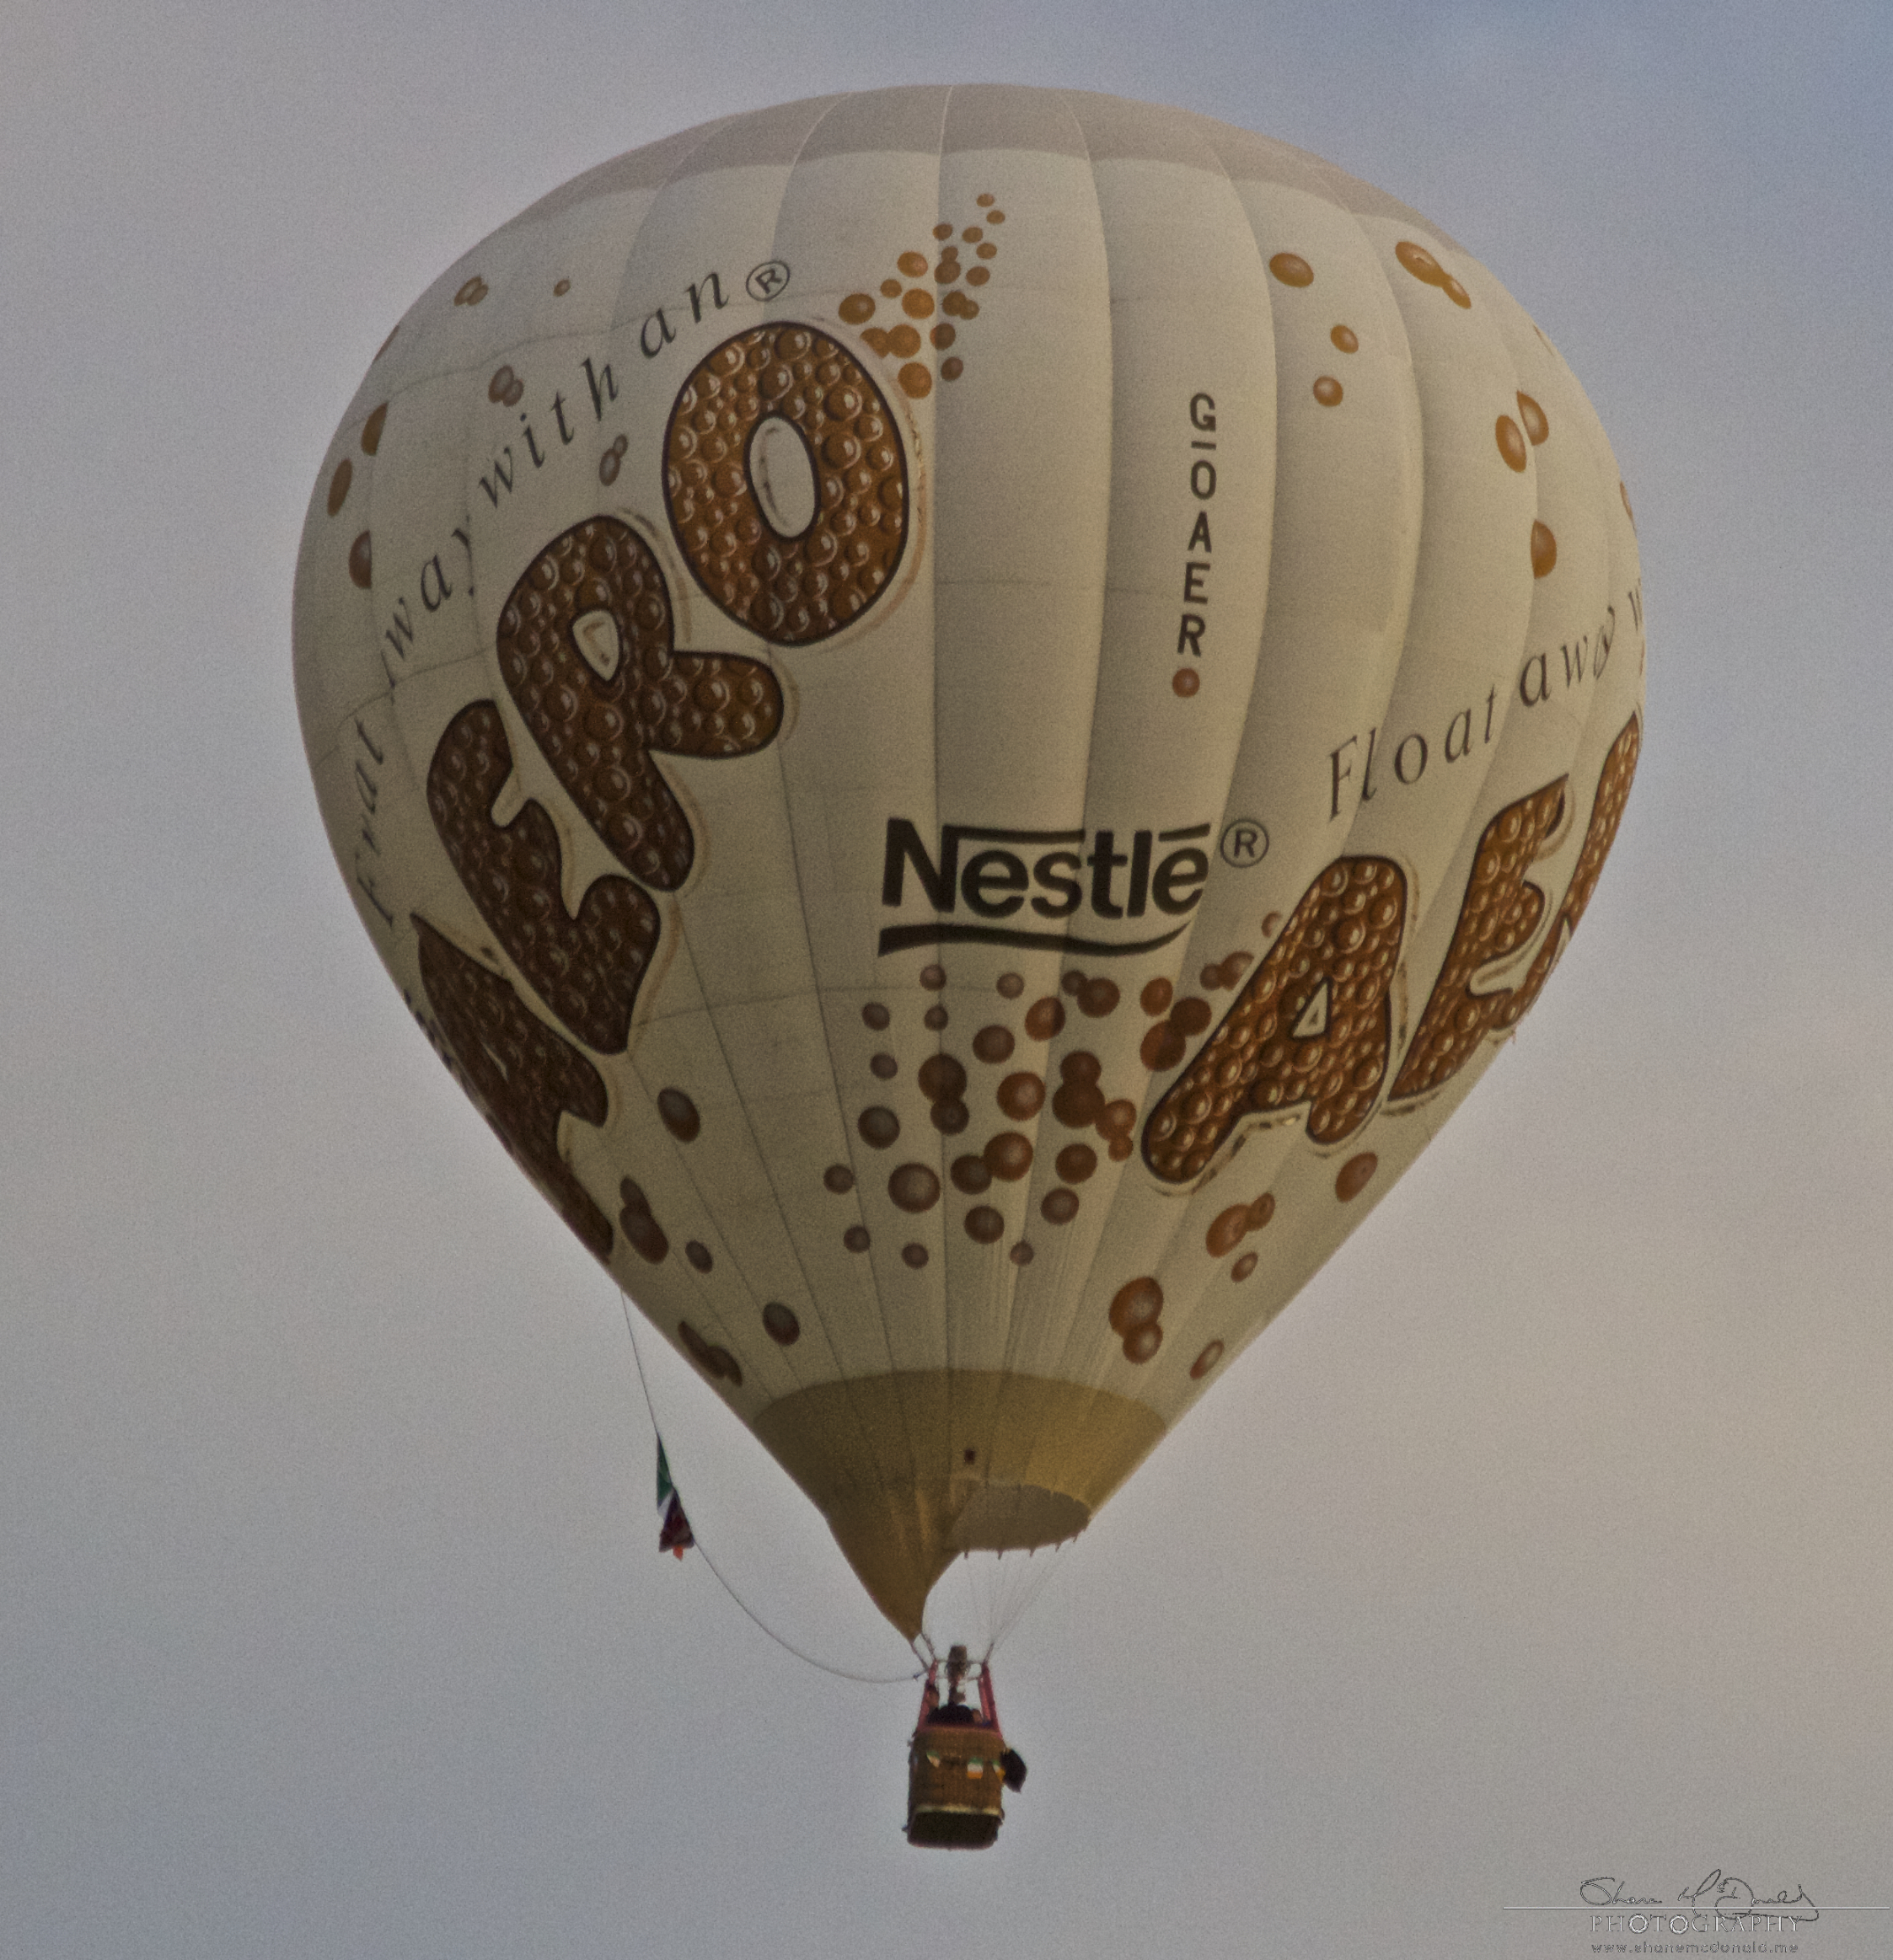 Irish Balloon Championships Aero Chocolate